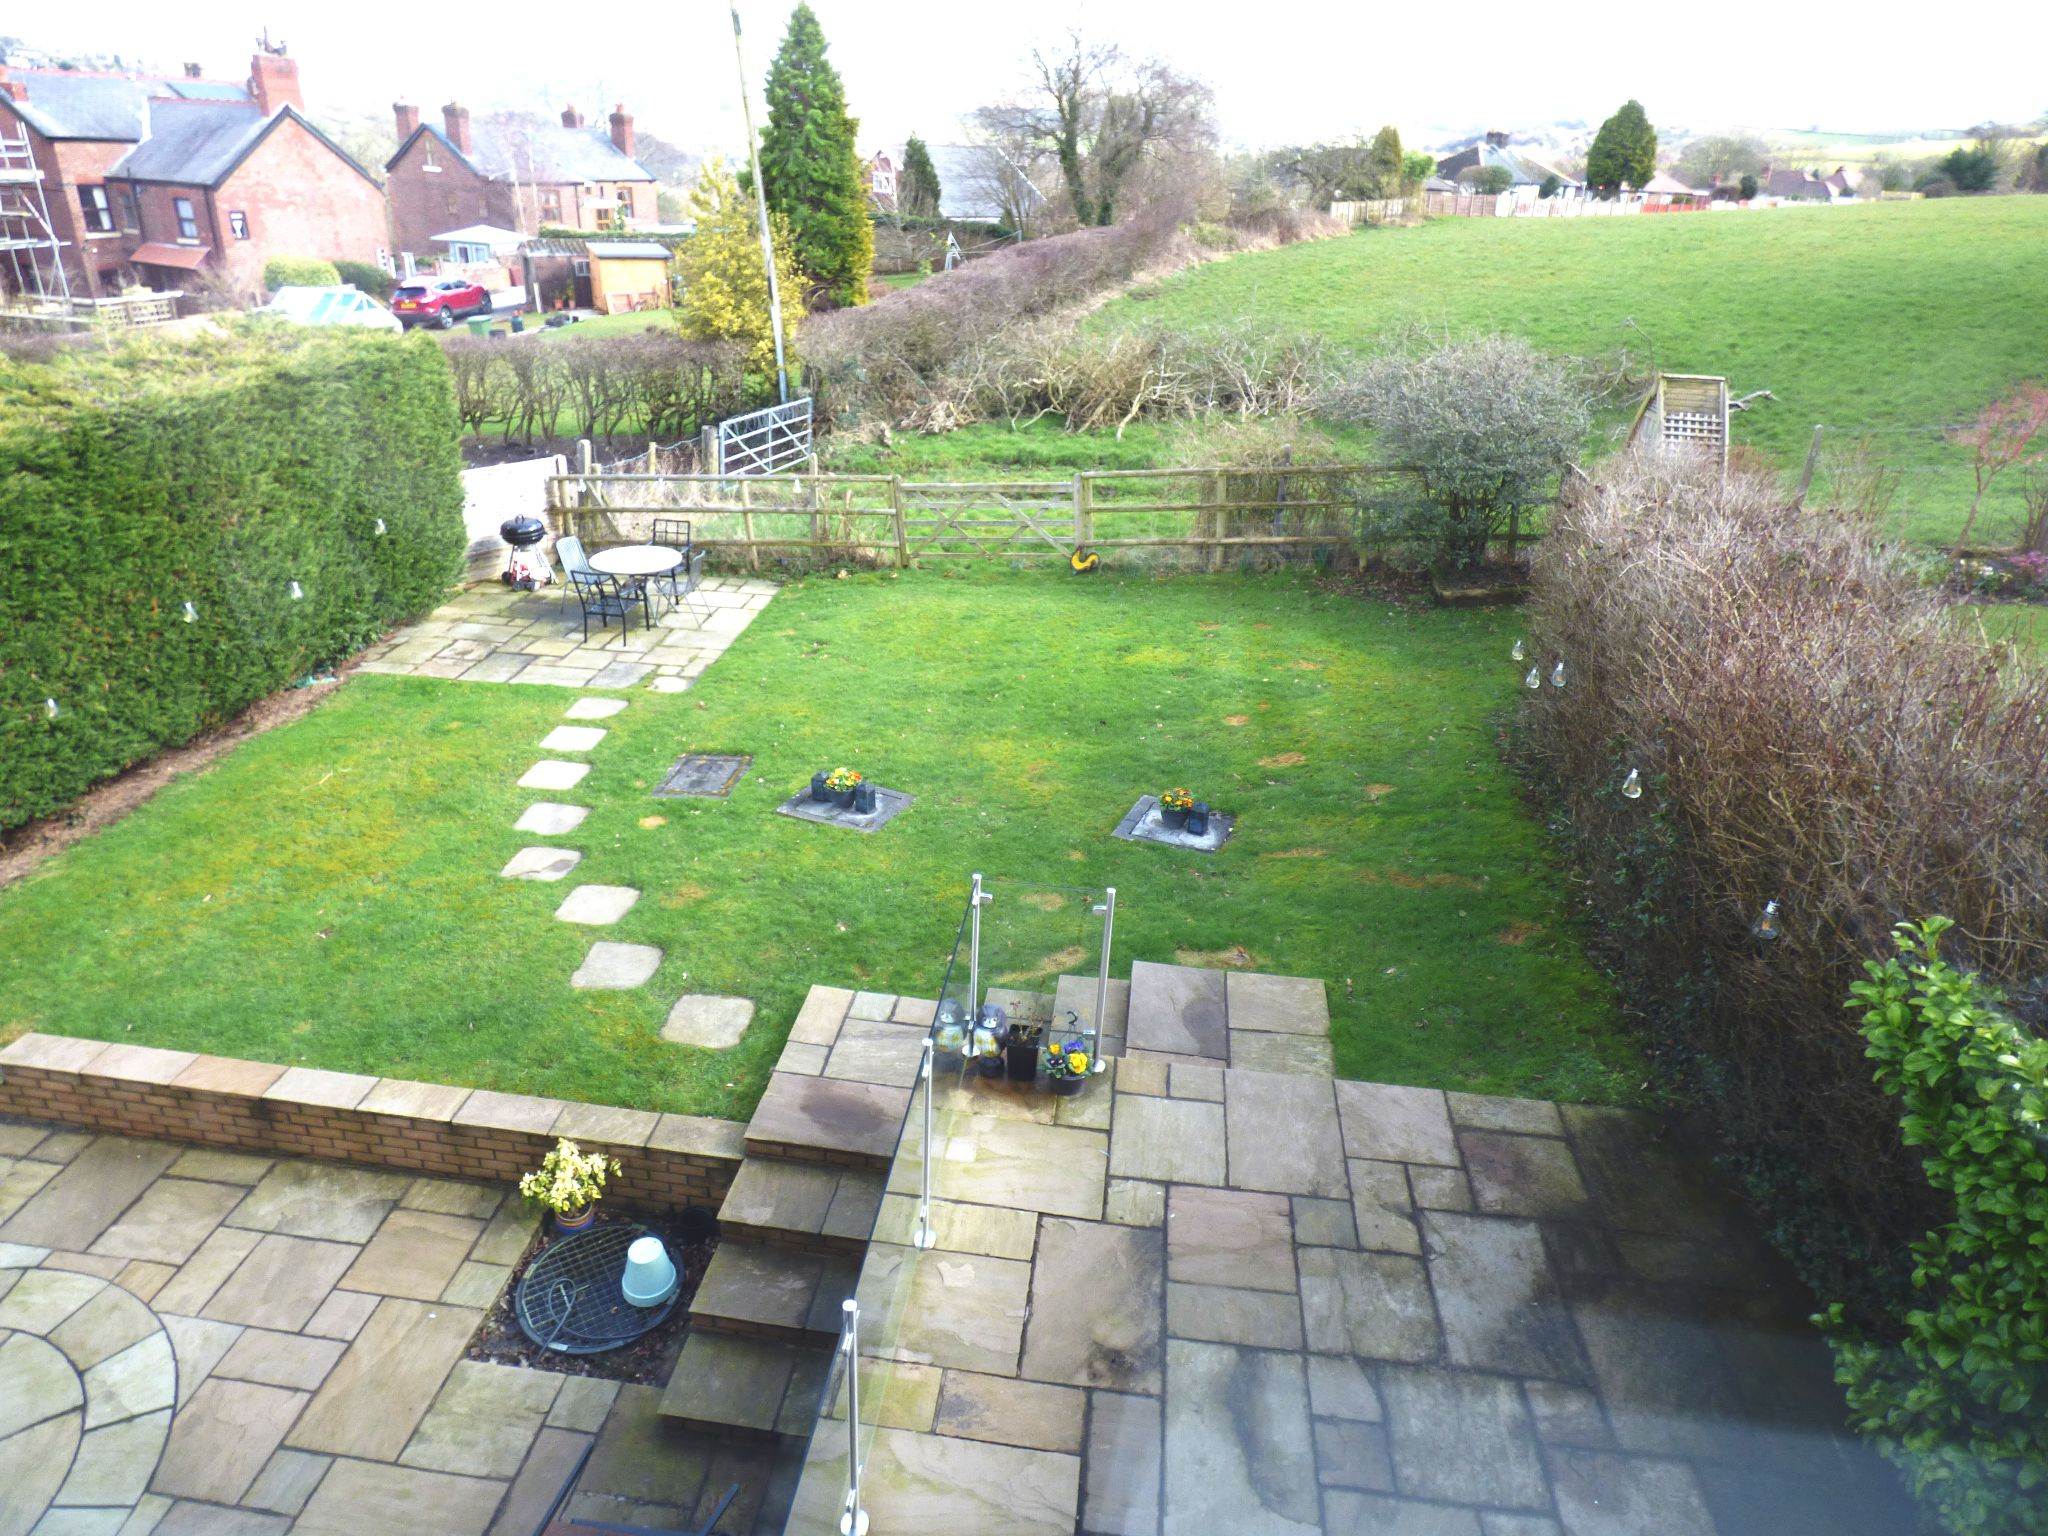 5 Bedroom Detached House For Sale - Rear Garden